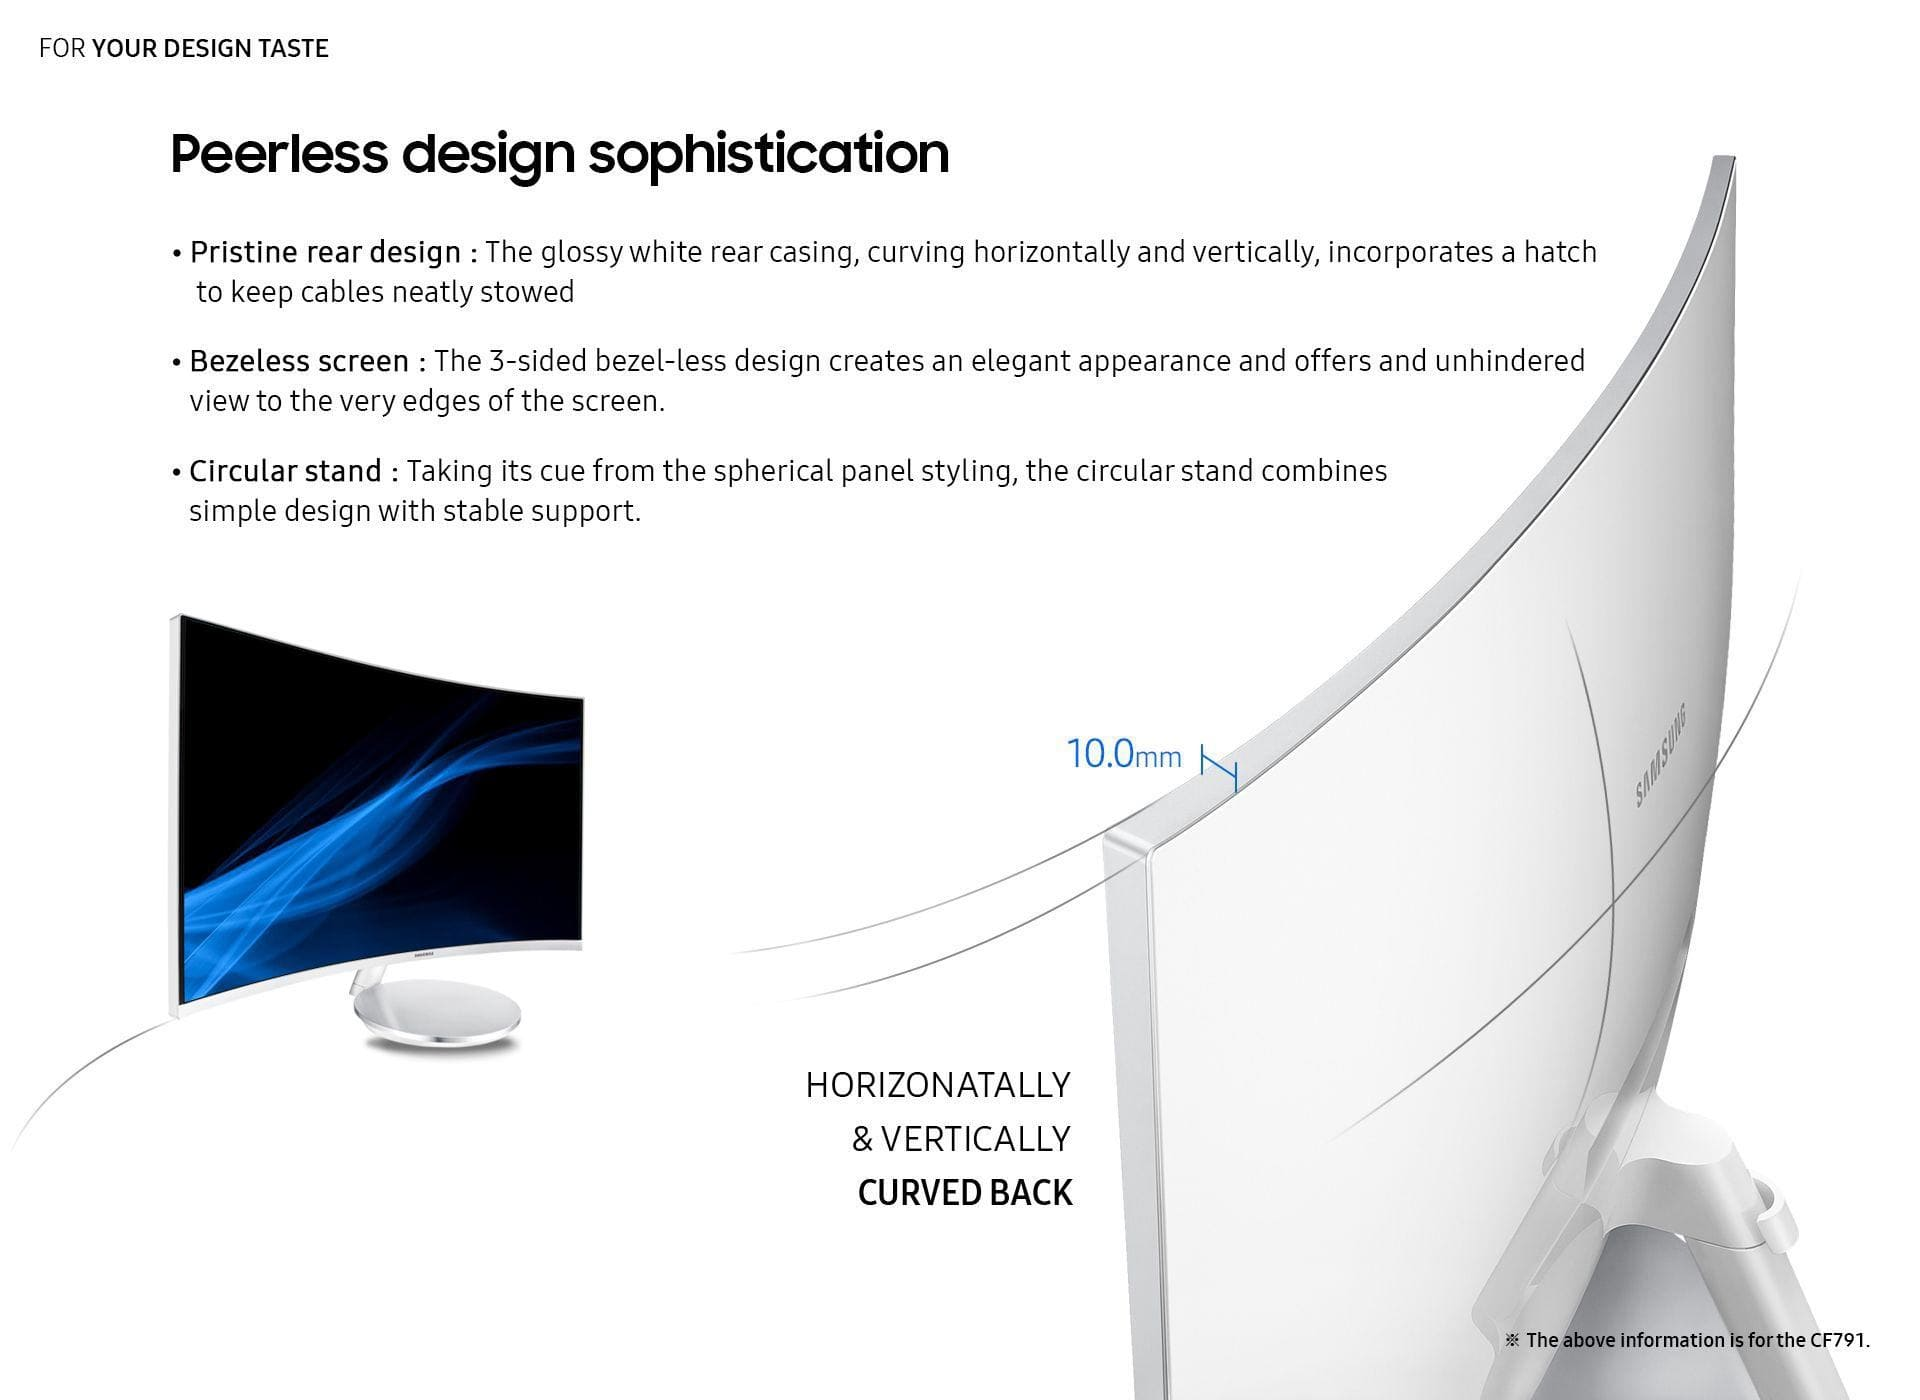 Peerless design sophistication